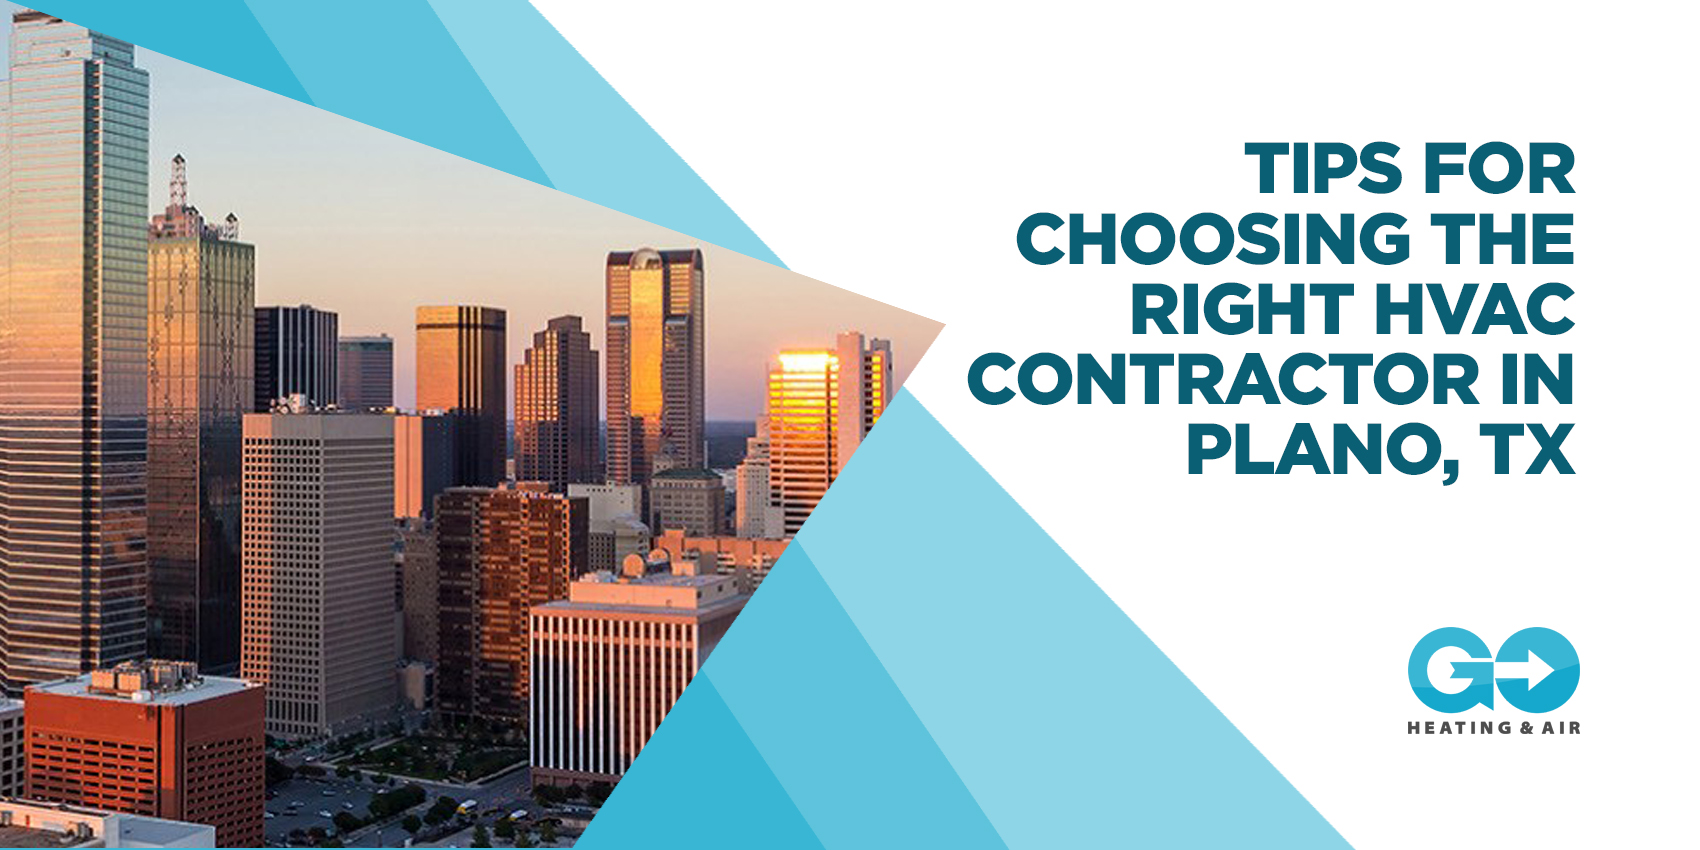 Tips for Choosing the Right HVAC Contractor in Plano, TX